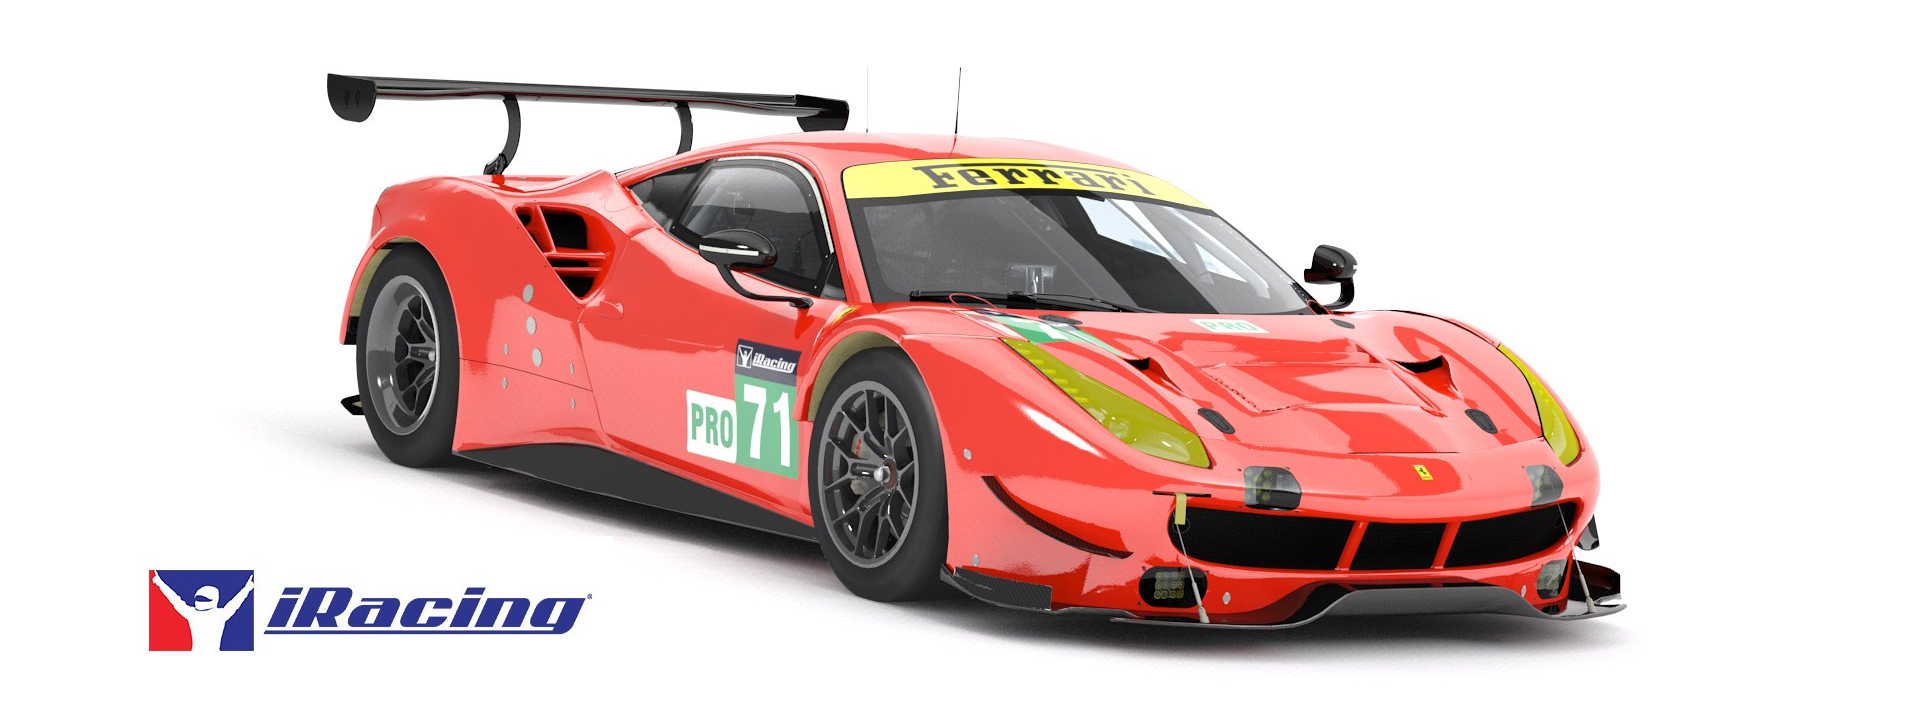 Iracing Ford Gt Lm Gte And Ferrari  Gte Coming June